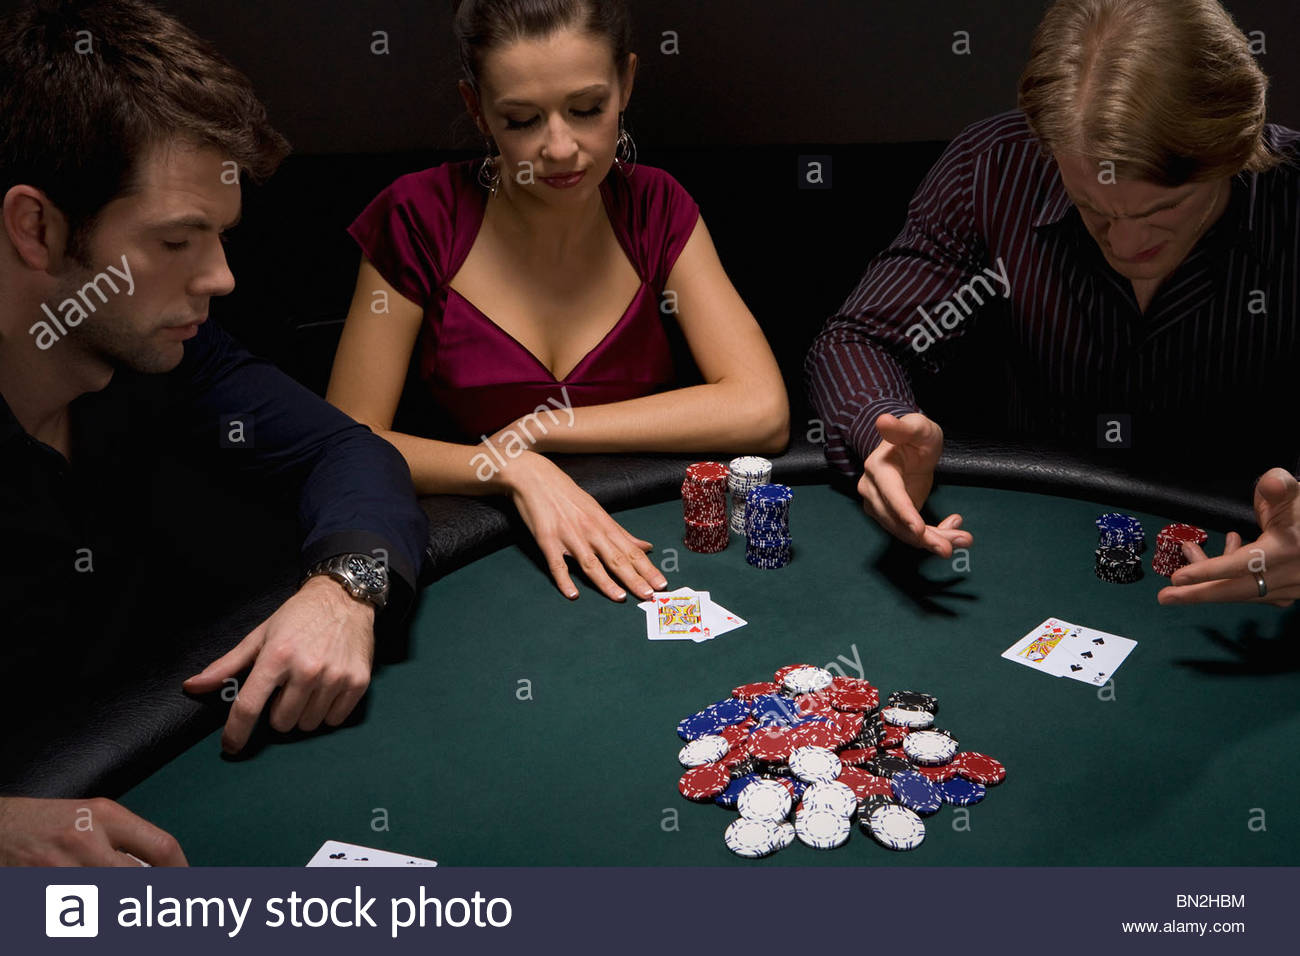 Frustrated man playing cards in casino - Stock Image